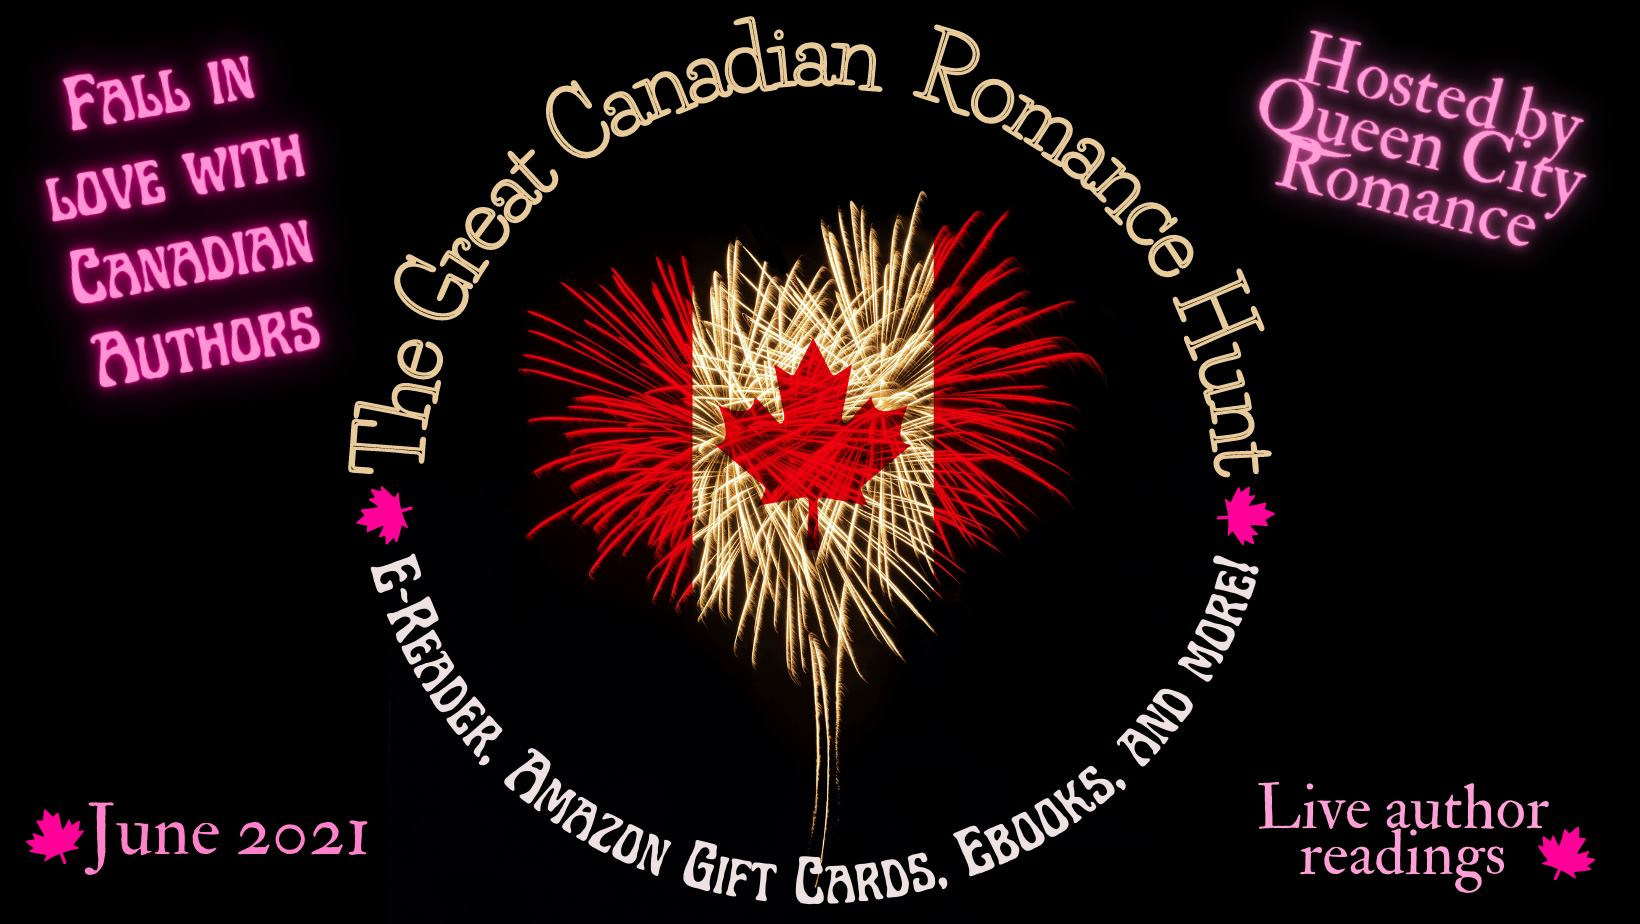 The Great Canadian Romance Hunt